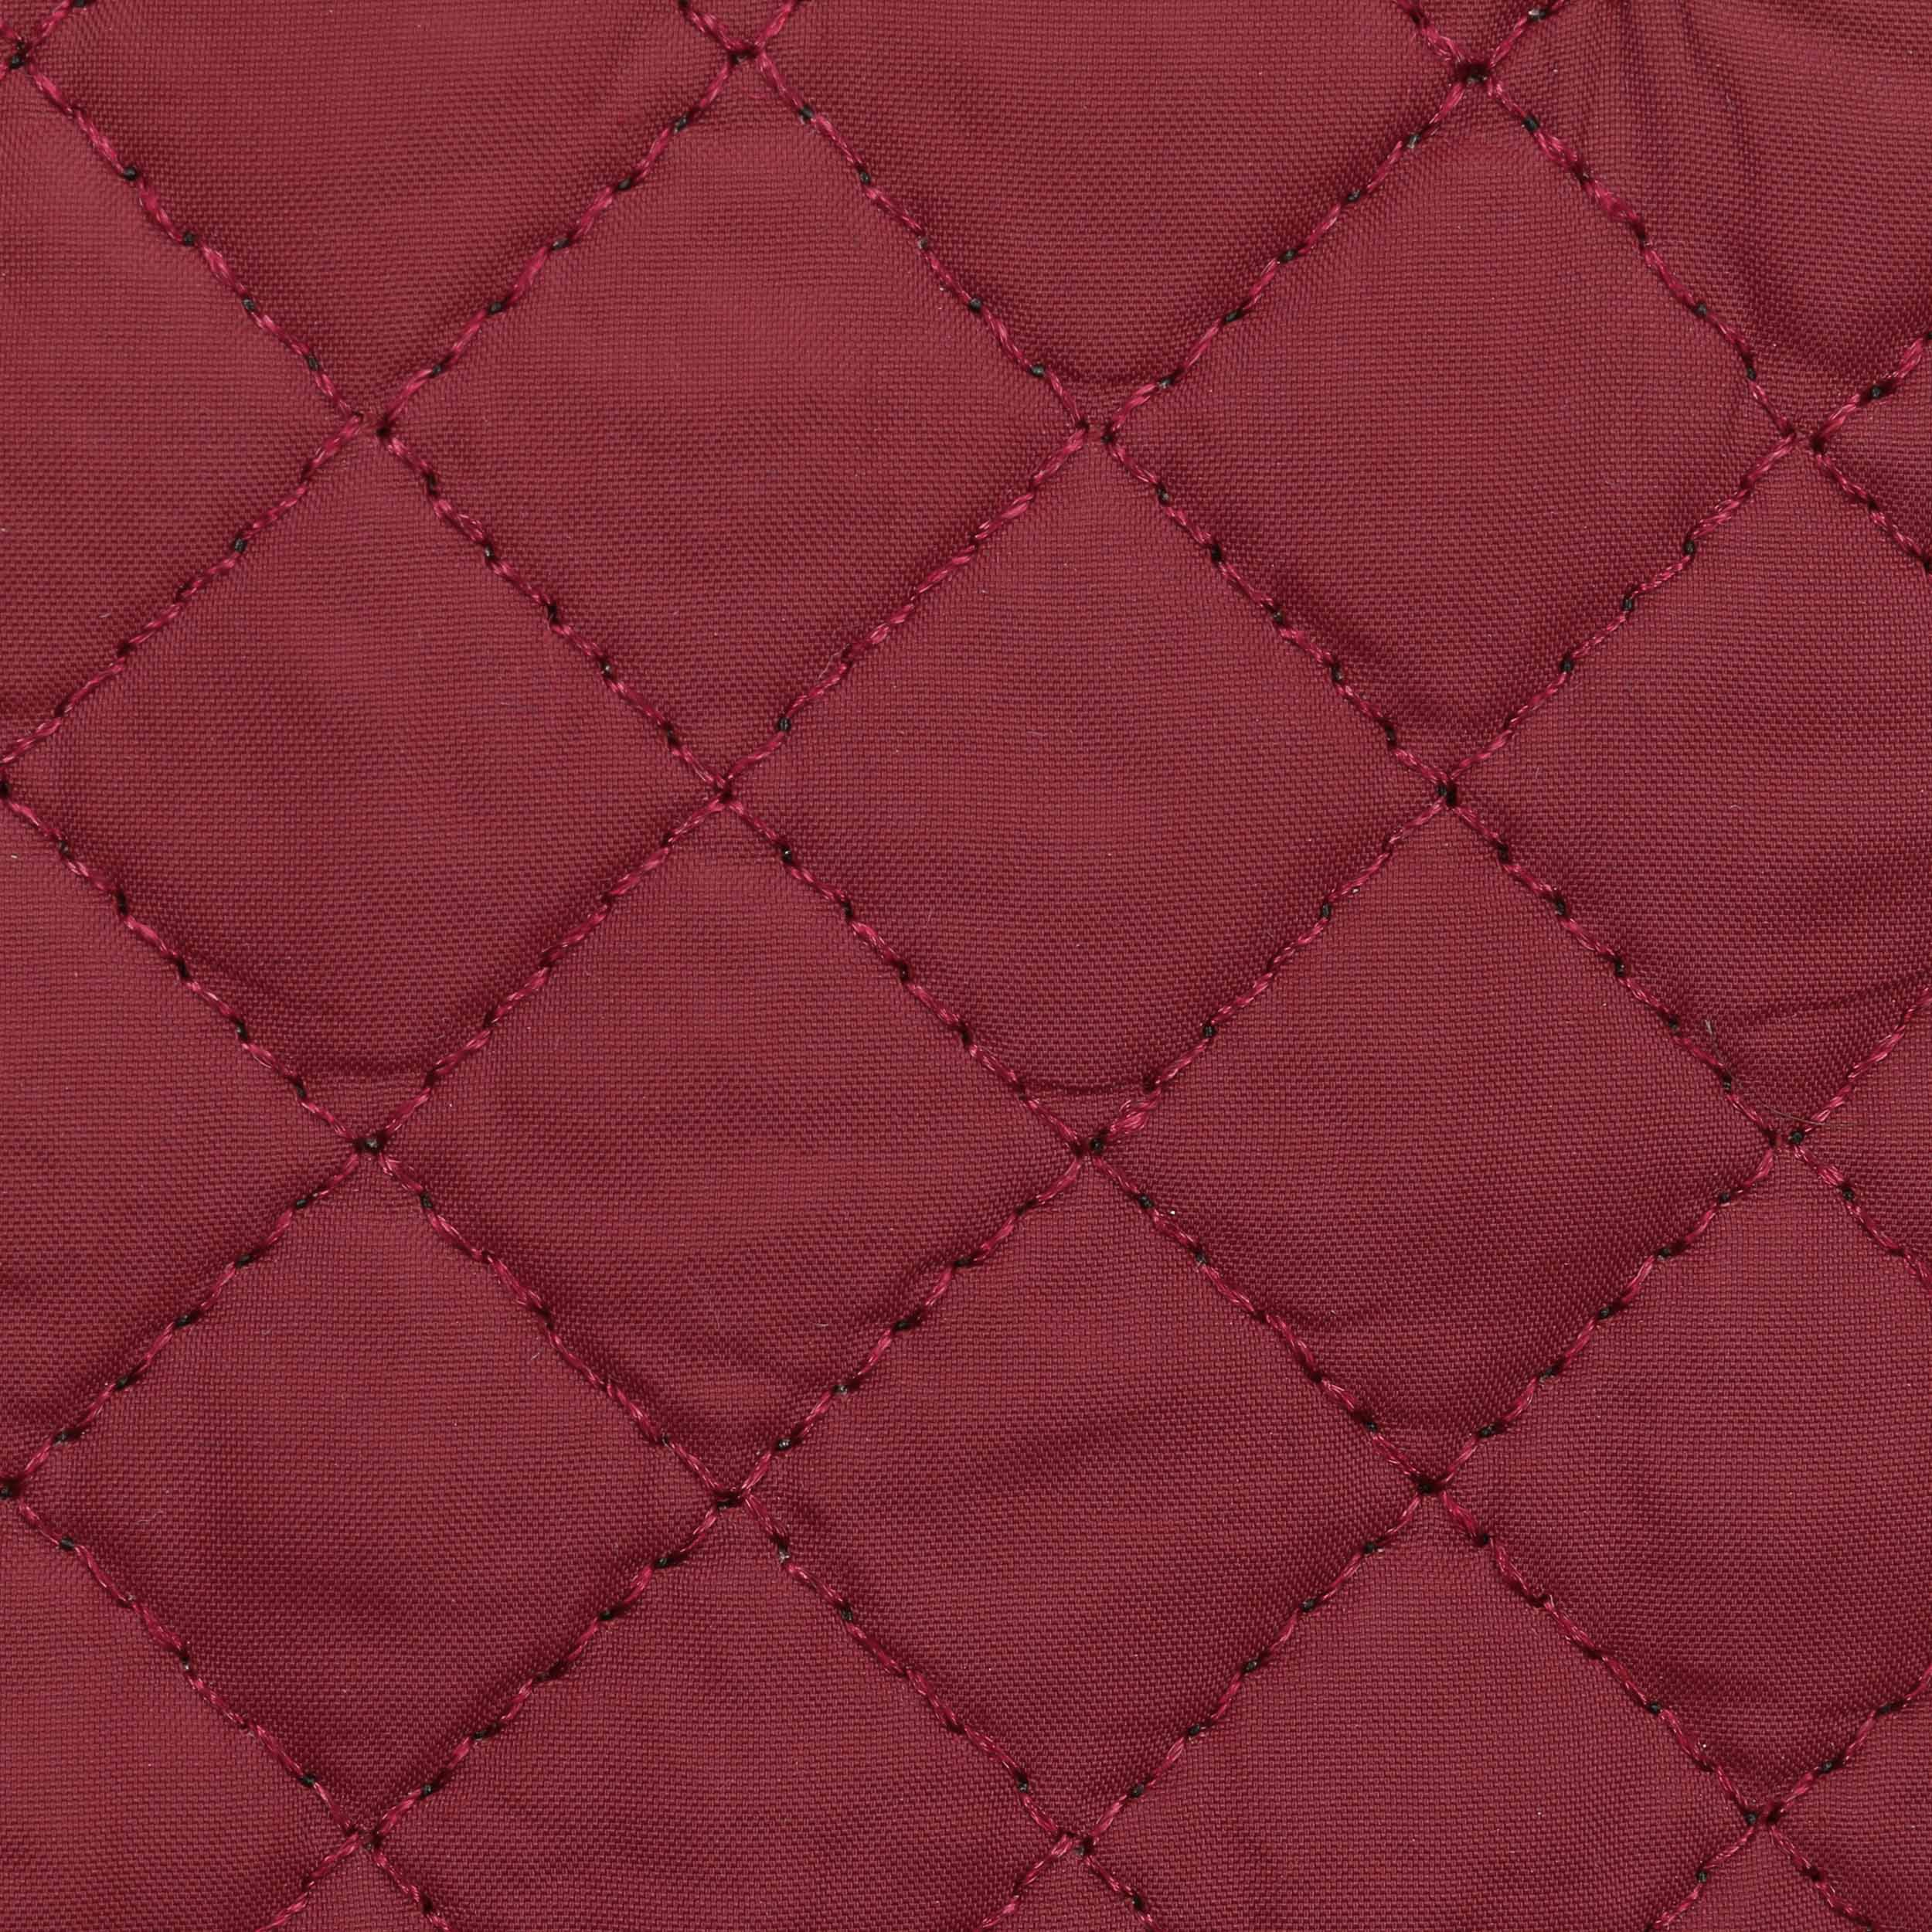 ... Guanti da Donna Quilted by McBURN - rosso bordeaux 3 ... e5ce6d42a0dc